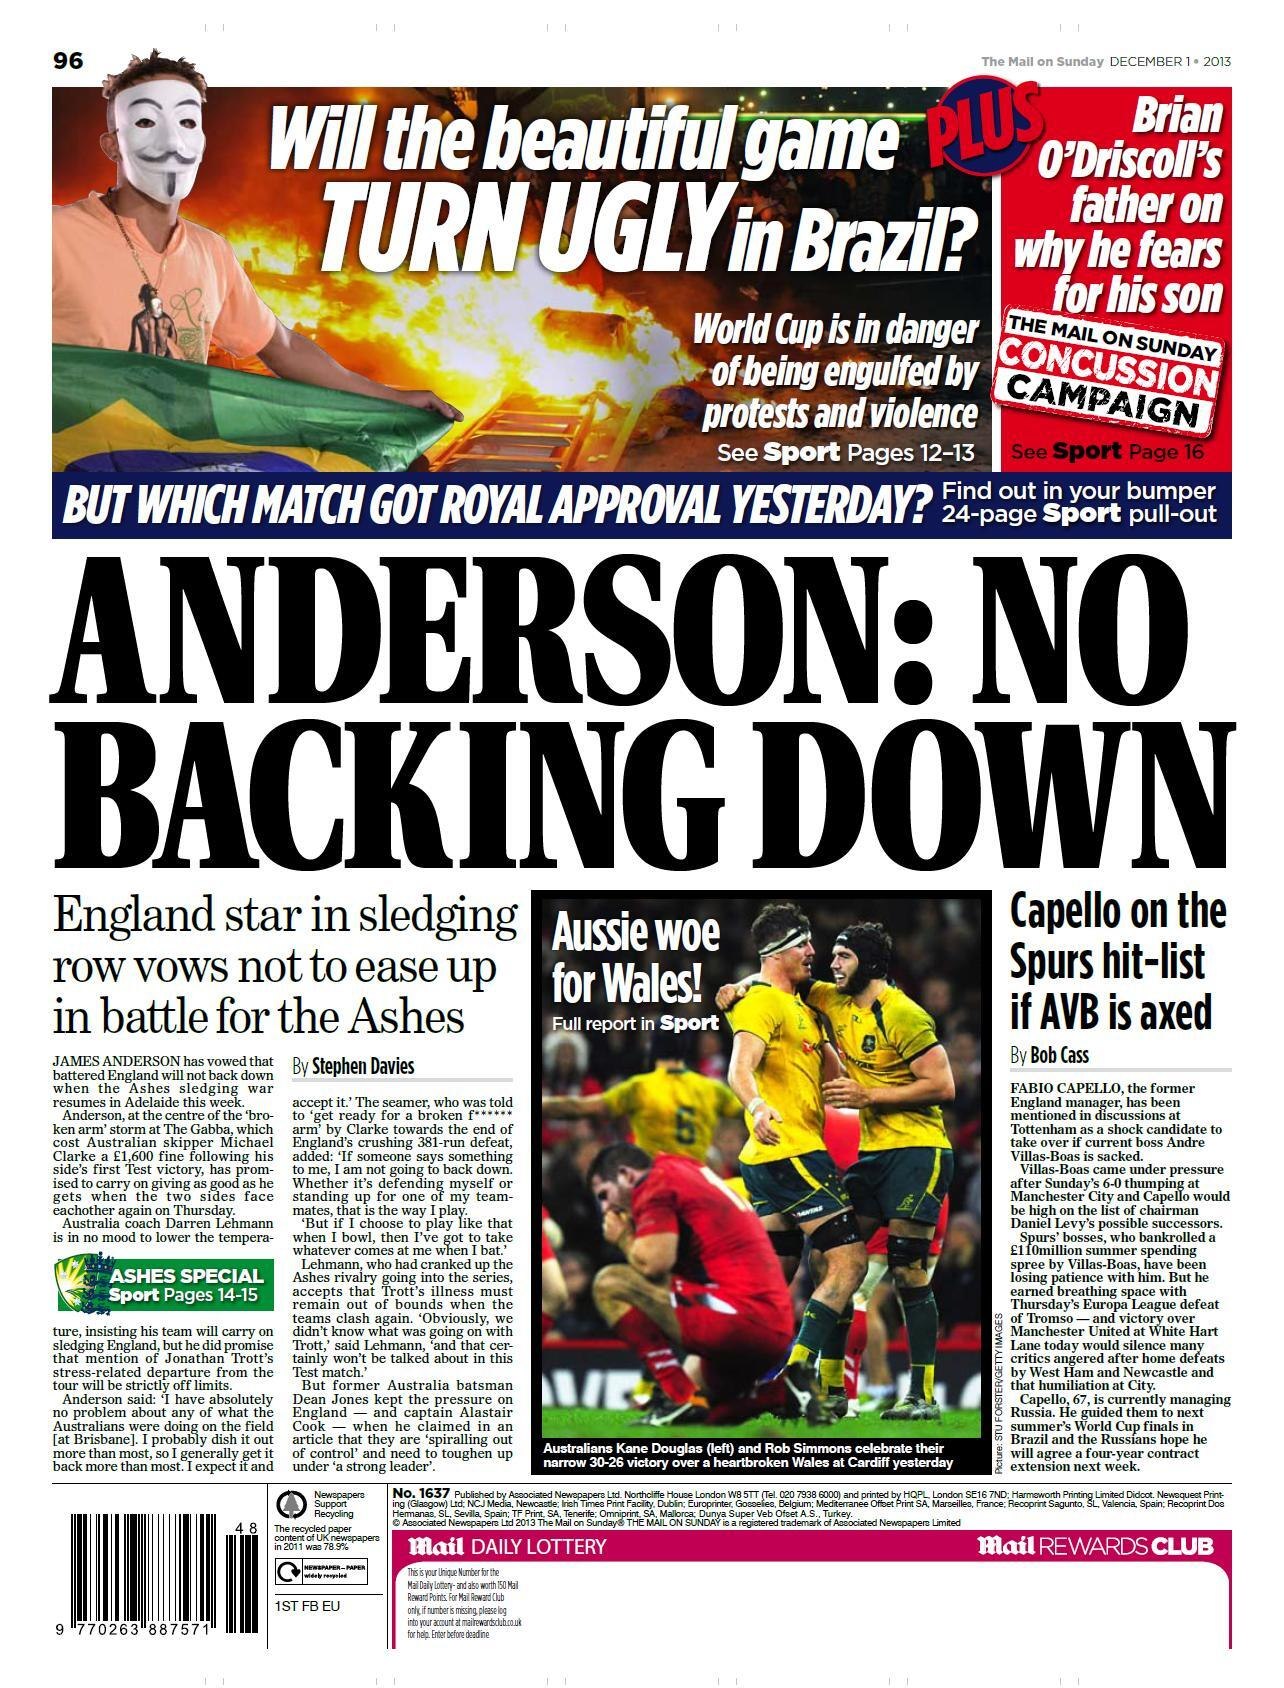 Tottenham begin looking for an AVB replacement, Yakin & Capello in the running [Telegraph + Mail]